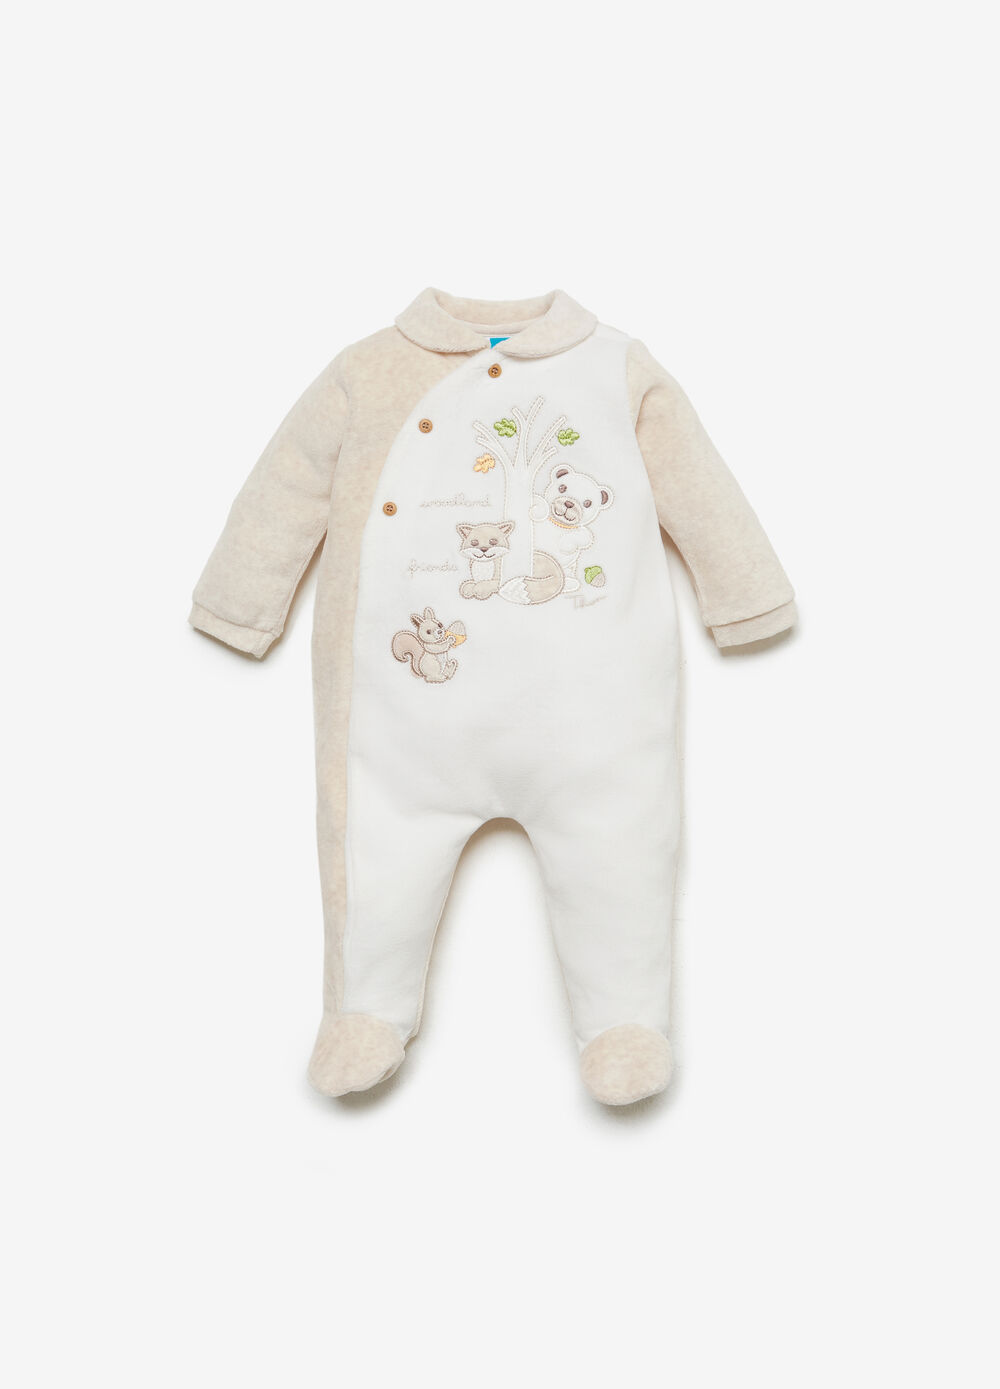 THUN two-tone cotton blend romper suit